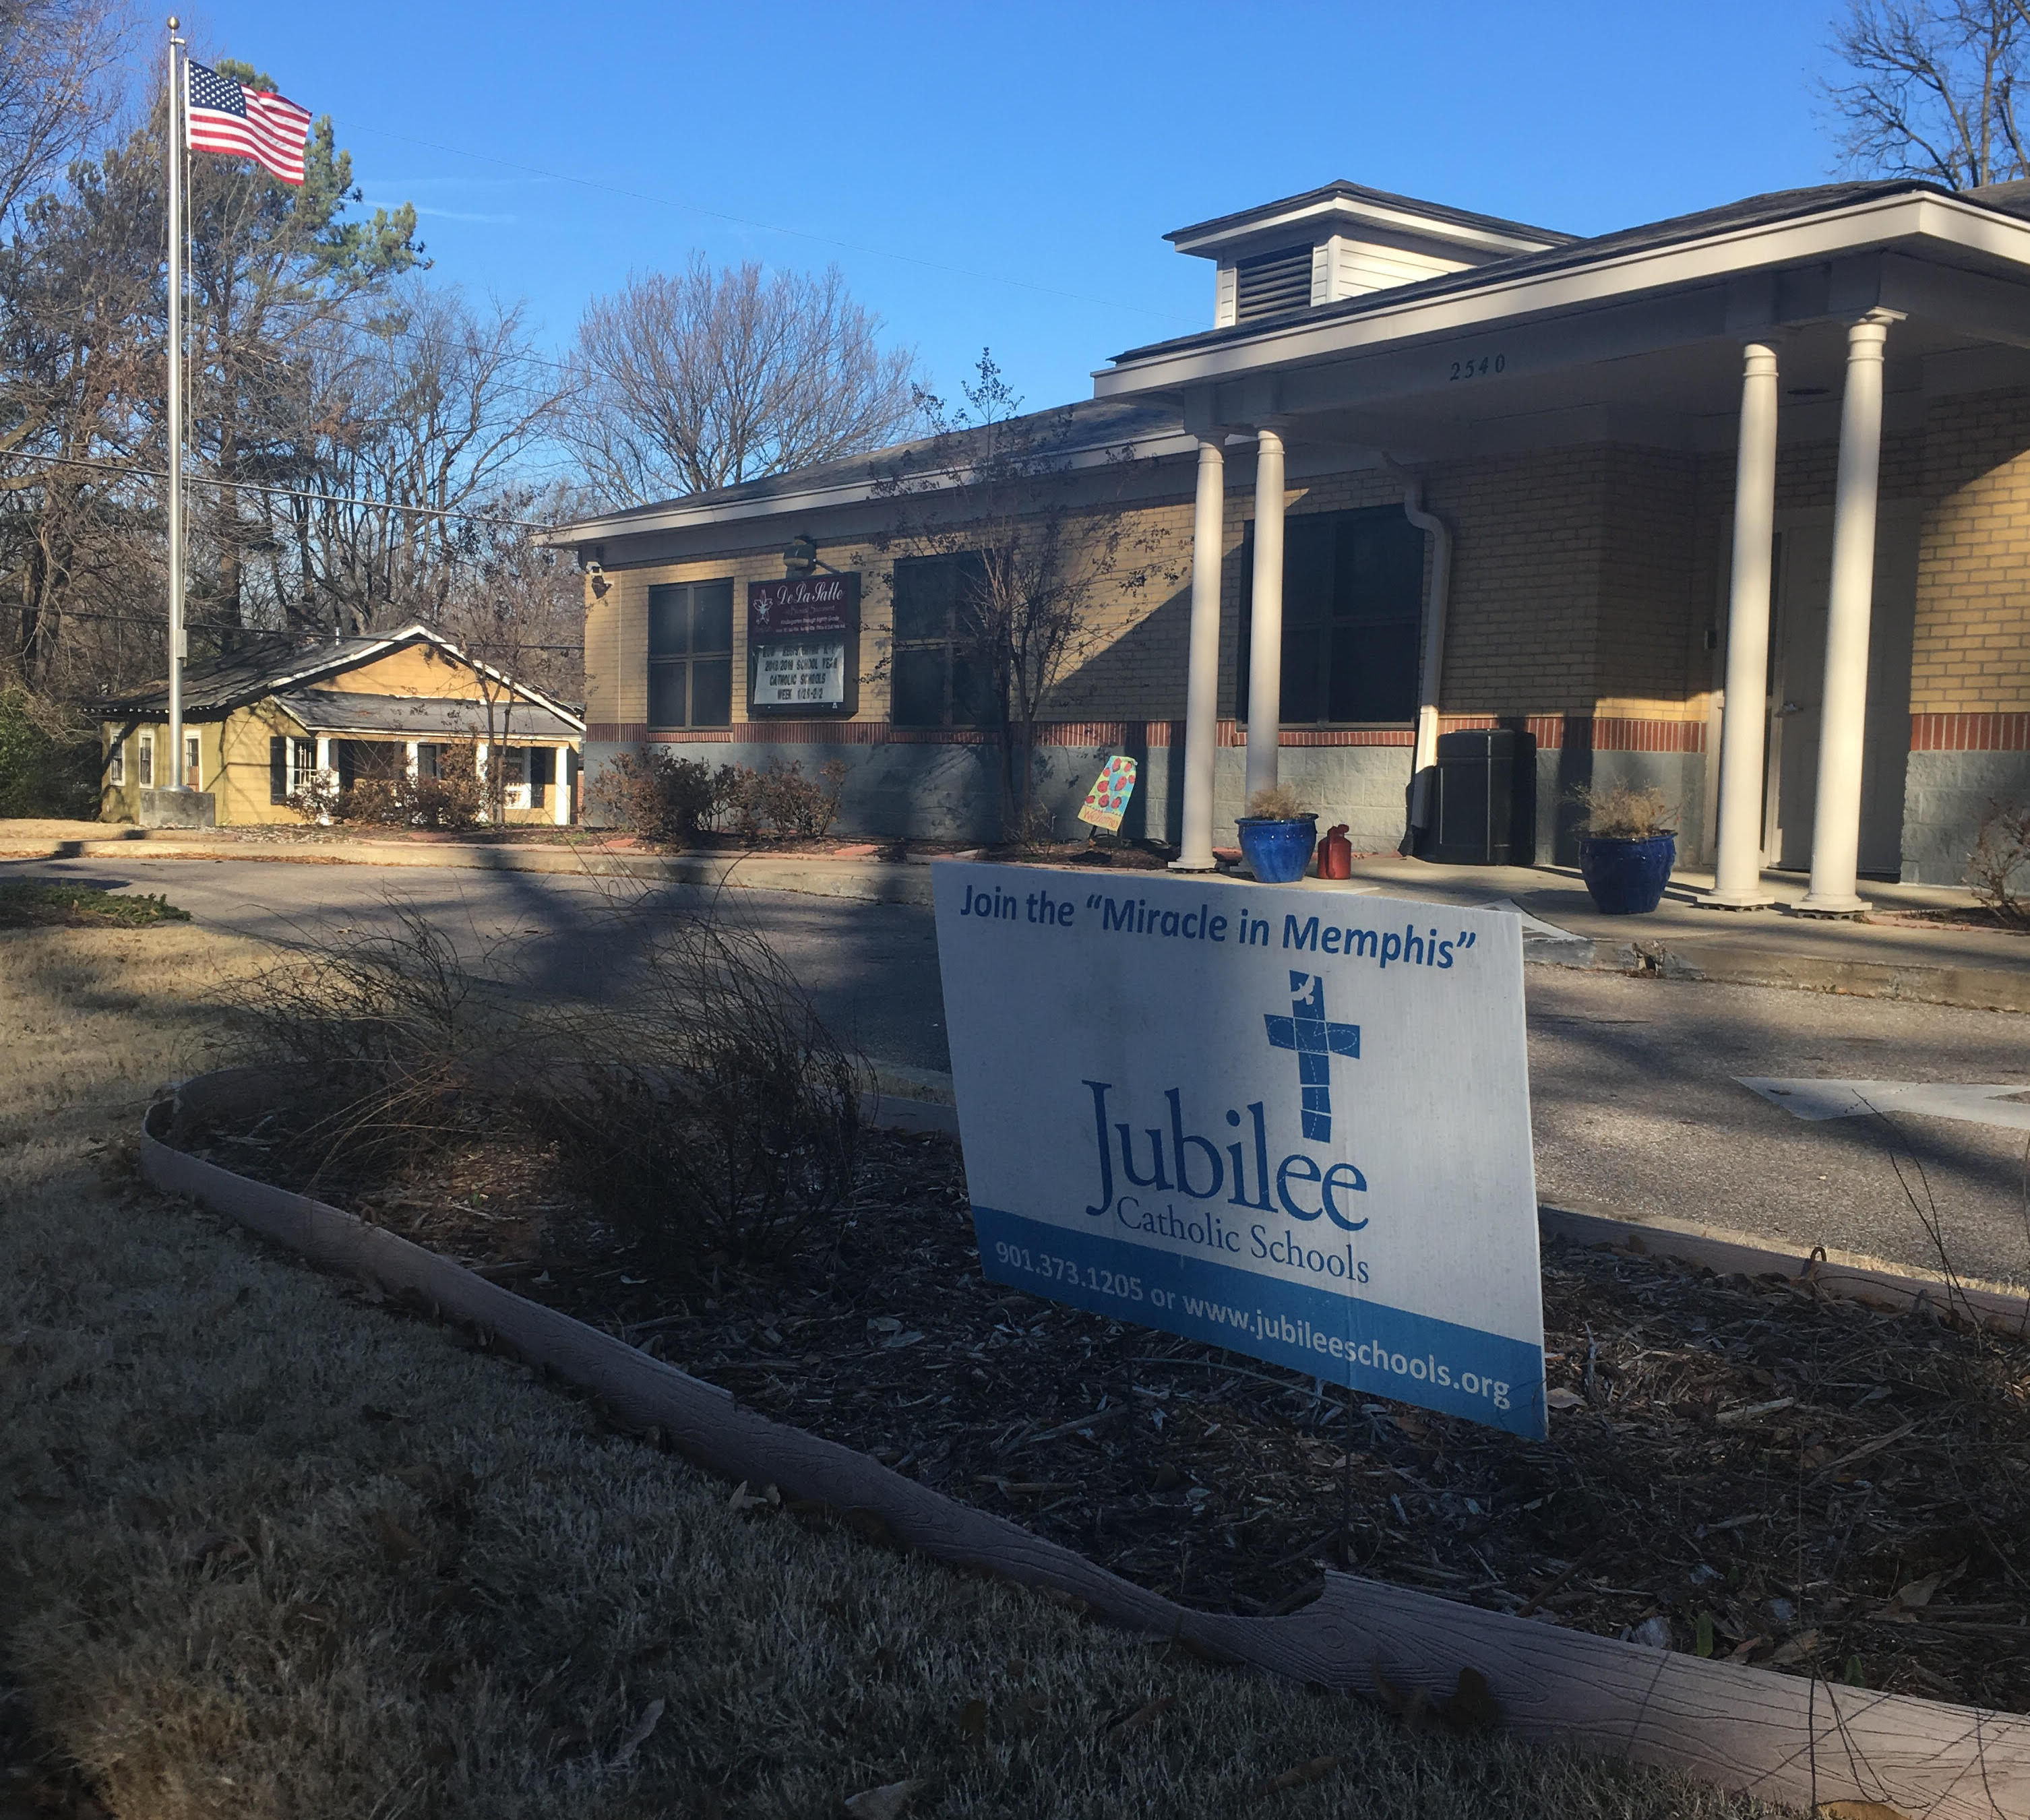 This private Catholic school in Binghampton is one of six that New Day Schools wants to convert into a charter school.